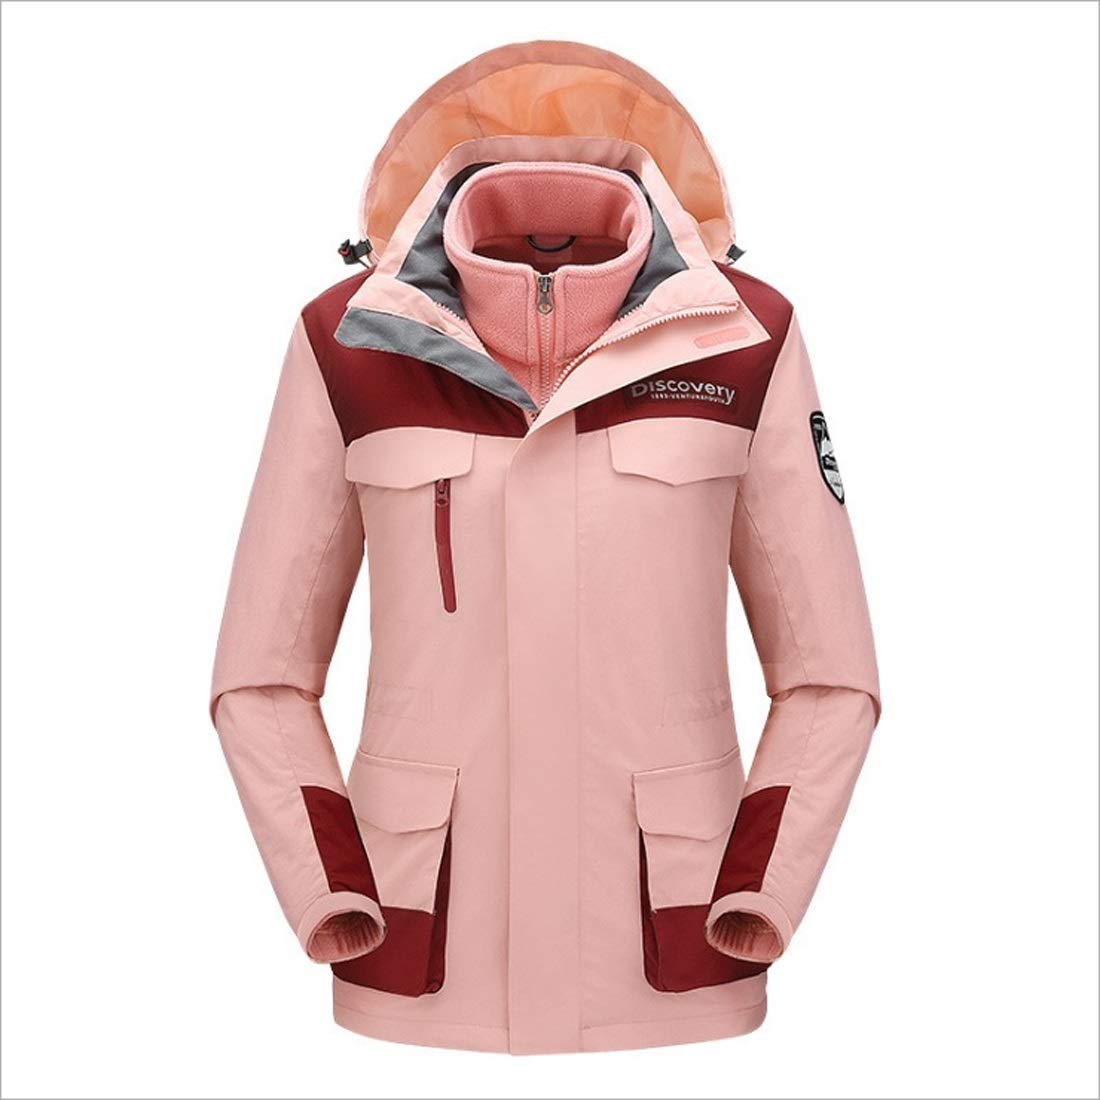 2 AUSWIEI Female Outdoor Jacket Threeinone Autumn and Winter Fashion Warm Mountaineering Suit Waterproof Breathable Slim Jacket (color   01, Size   L)